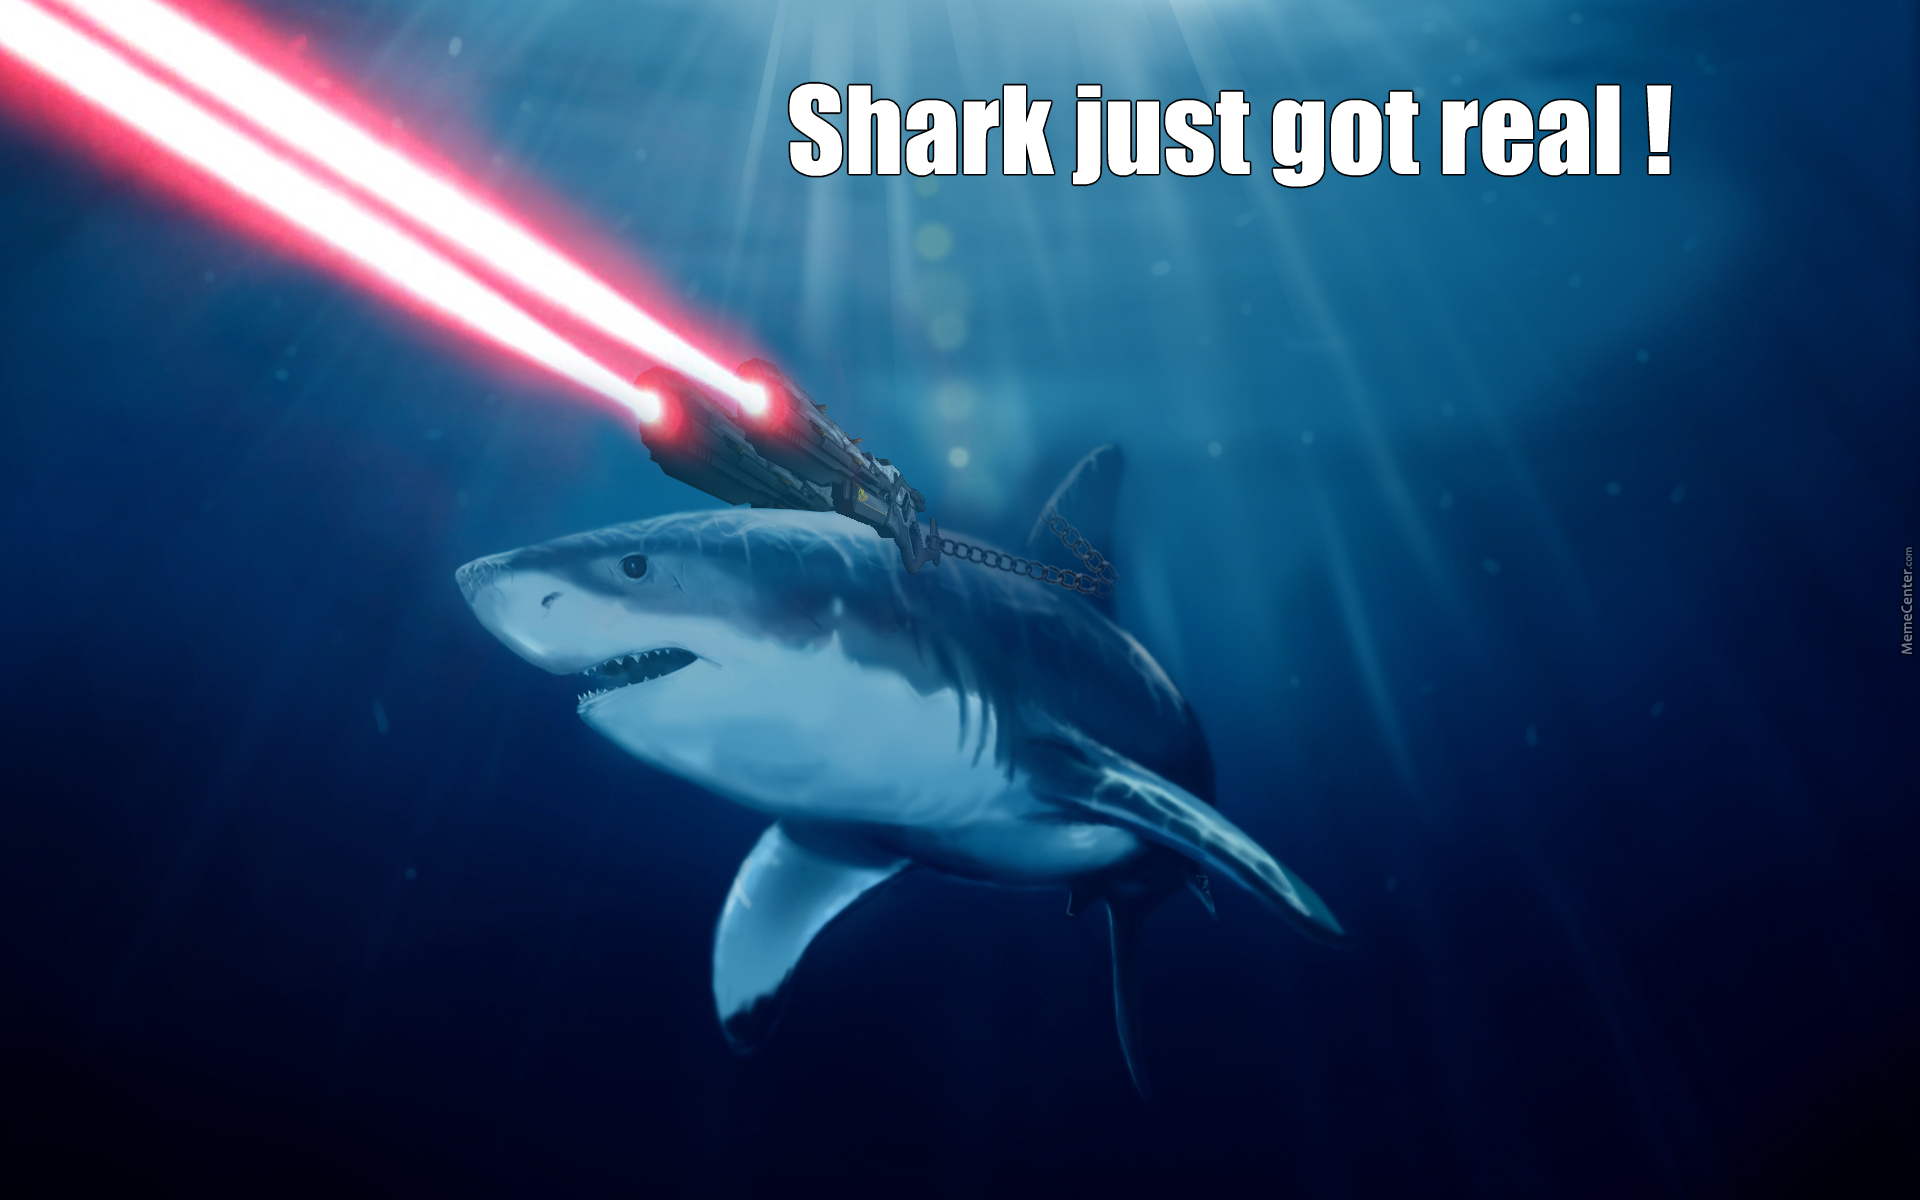 Equip Your Shark With Lasers By Souv Meme Center